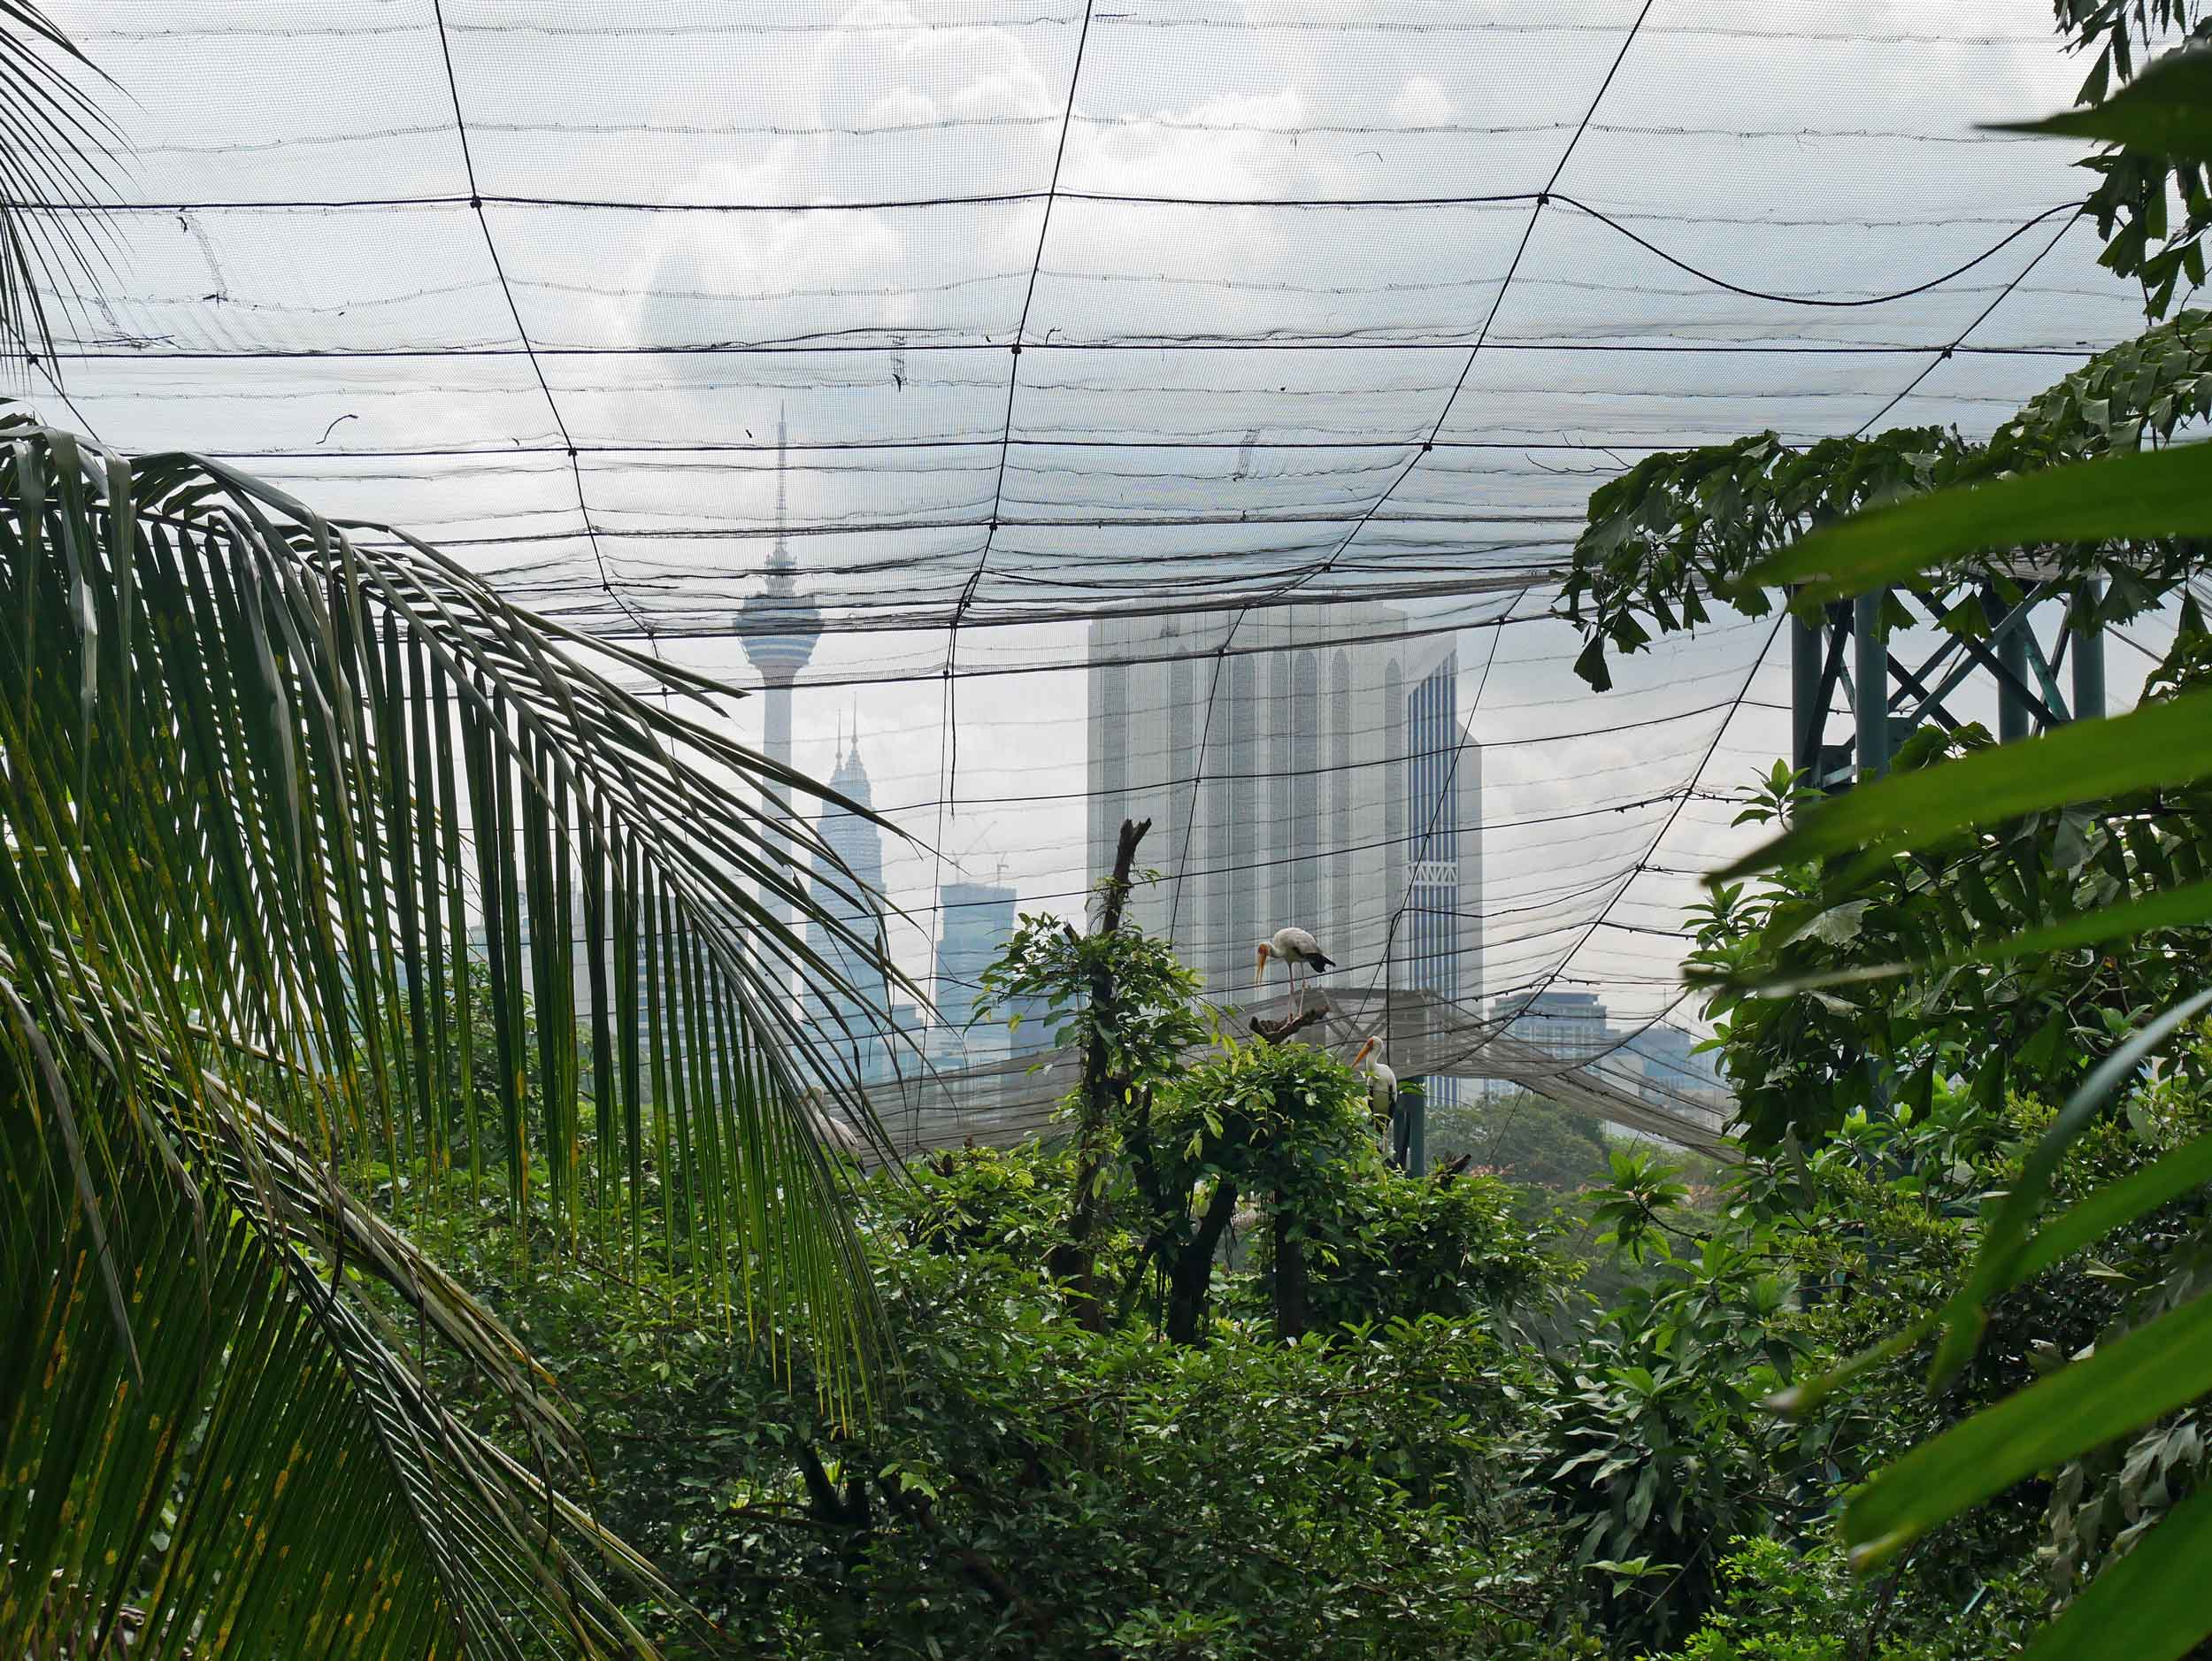 In the Bird Park, most all feathered creatures roam free, protected by a netted canopy with the KL skyline as backdrop.